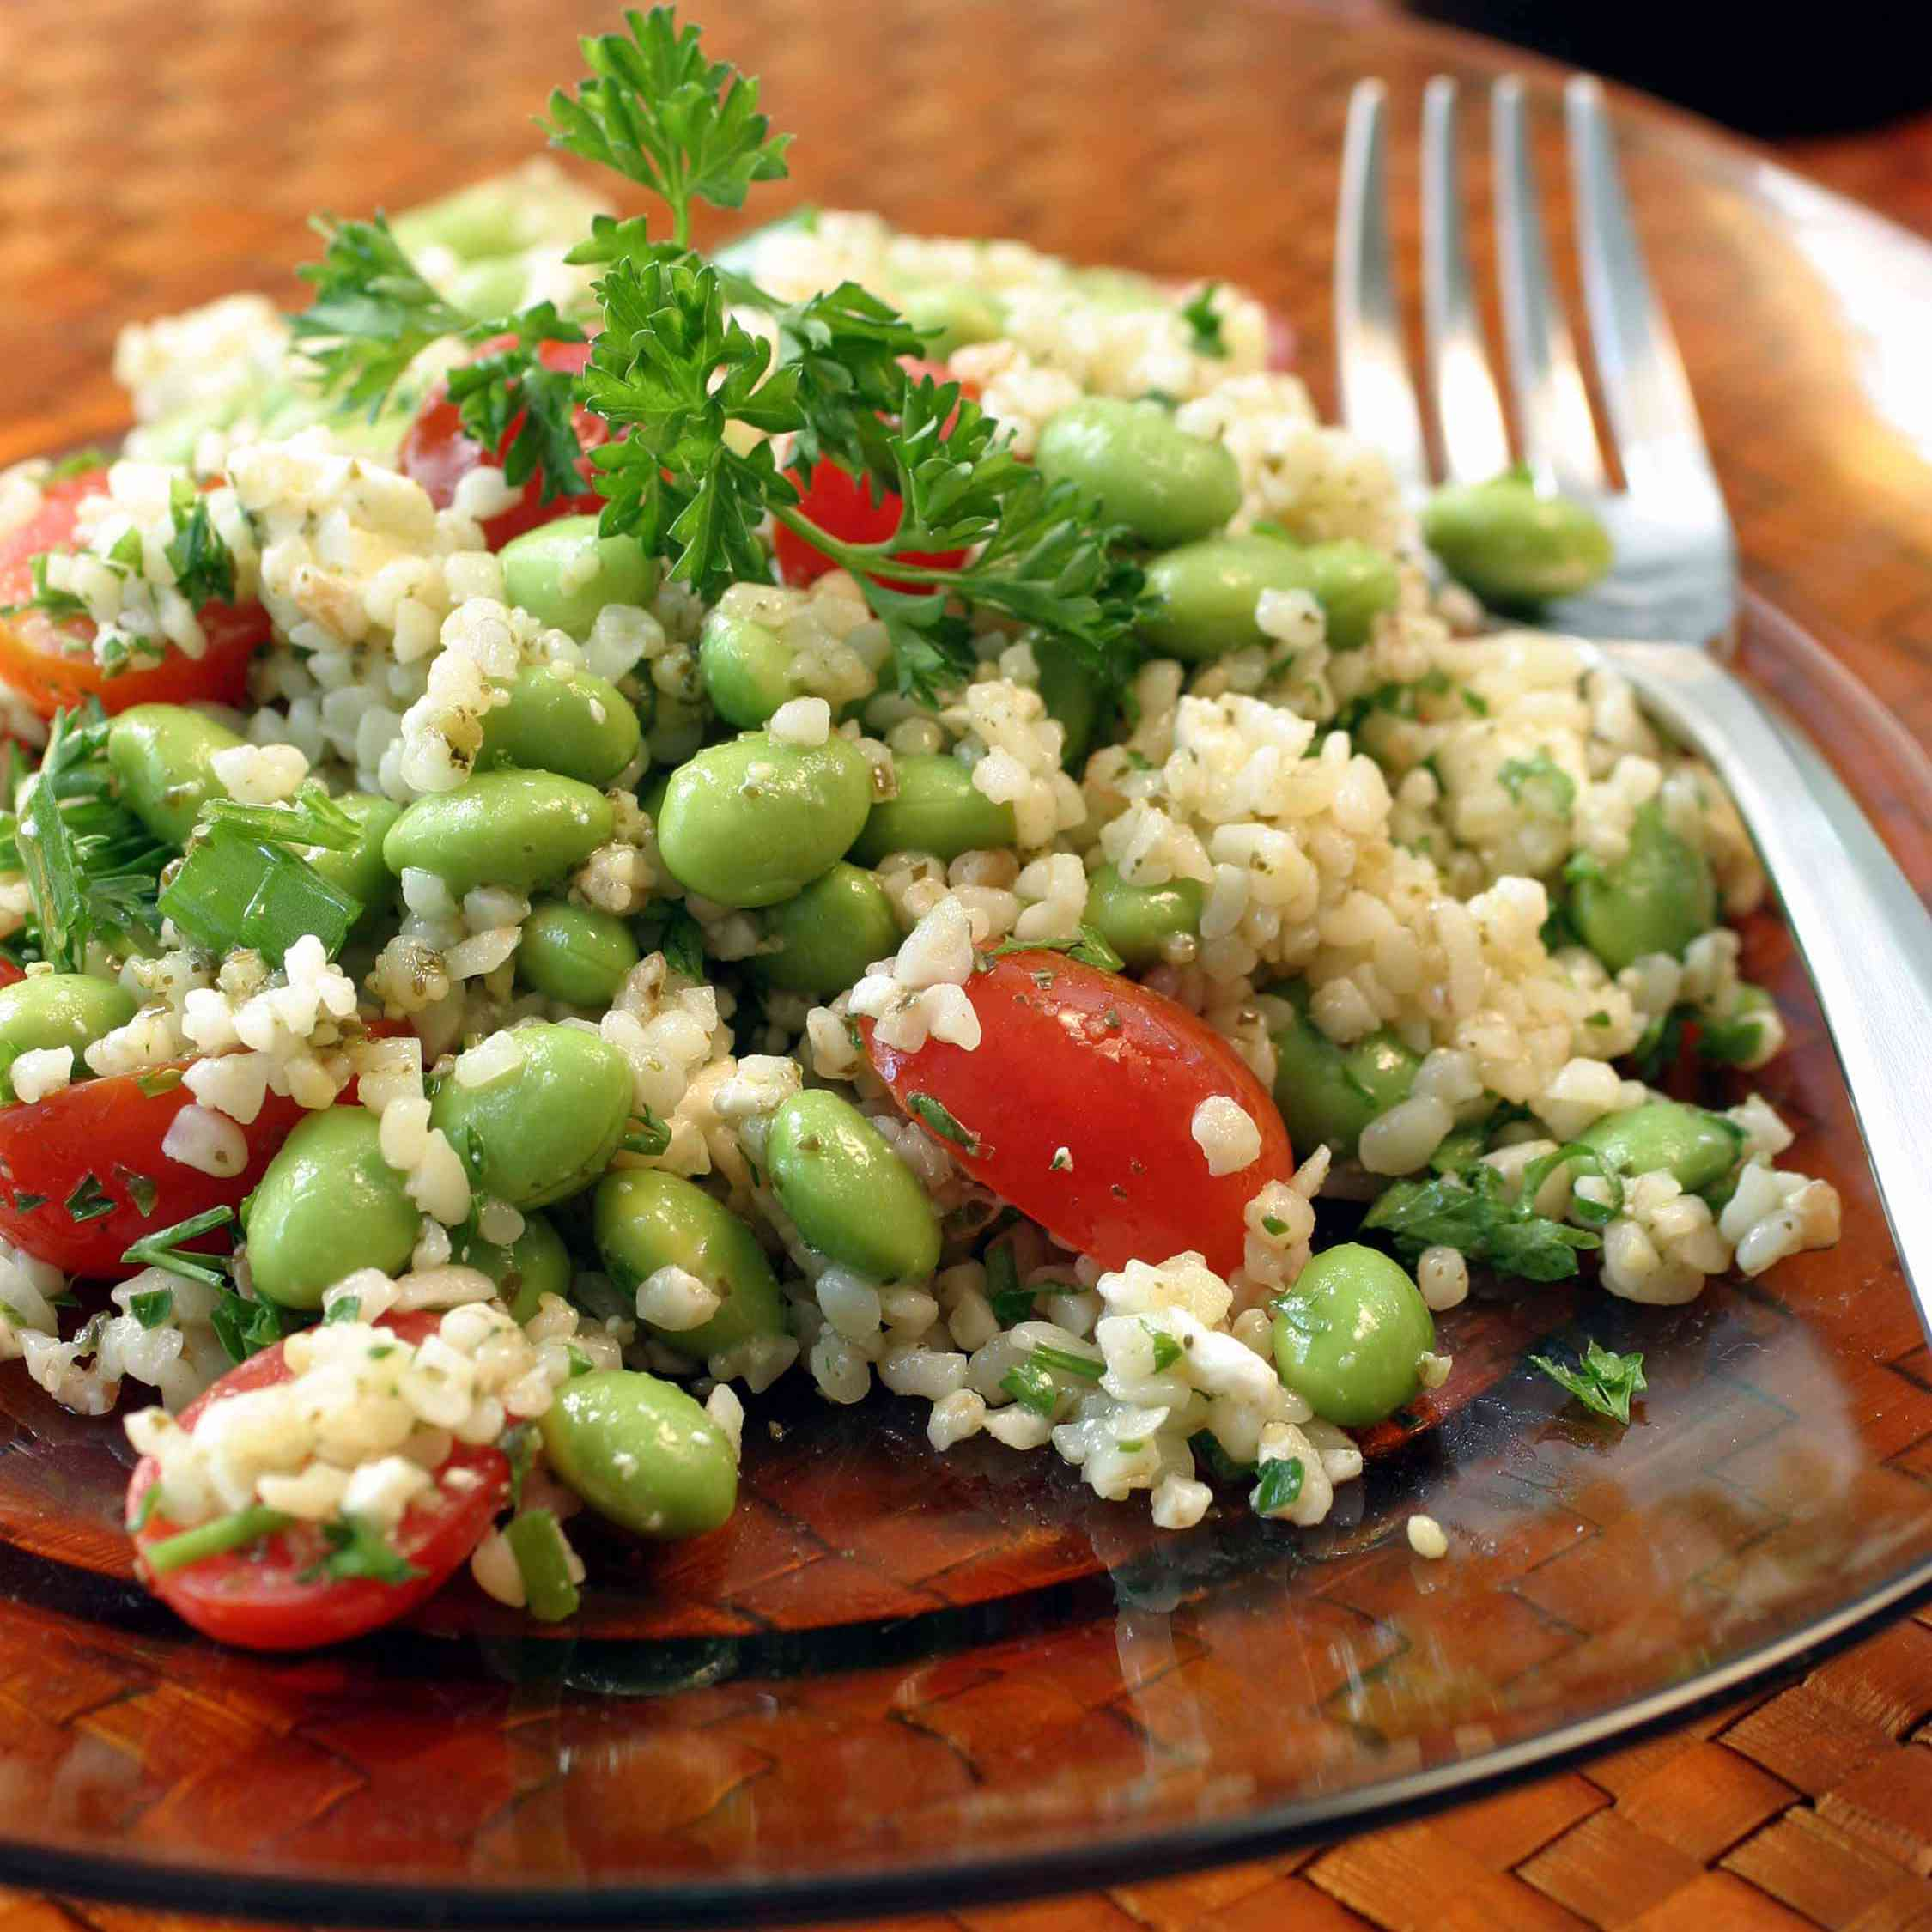 Tabbouleh Salad With Edamame and Feta Cheese